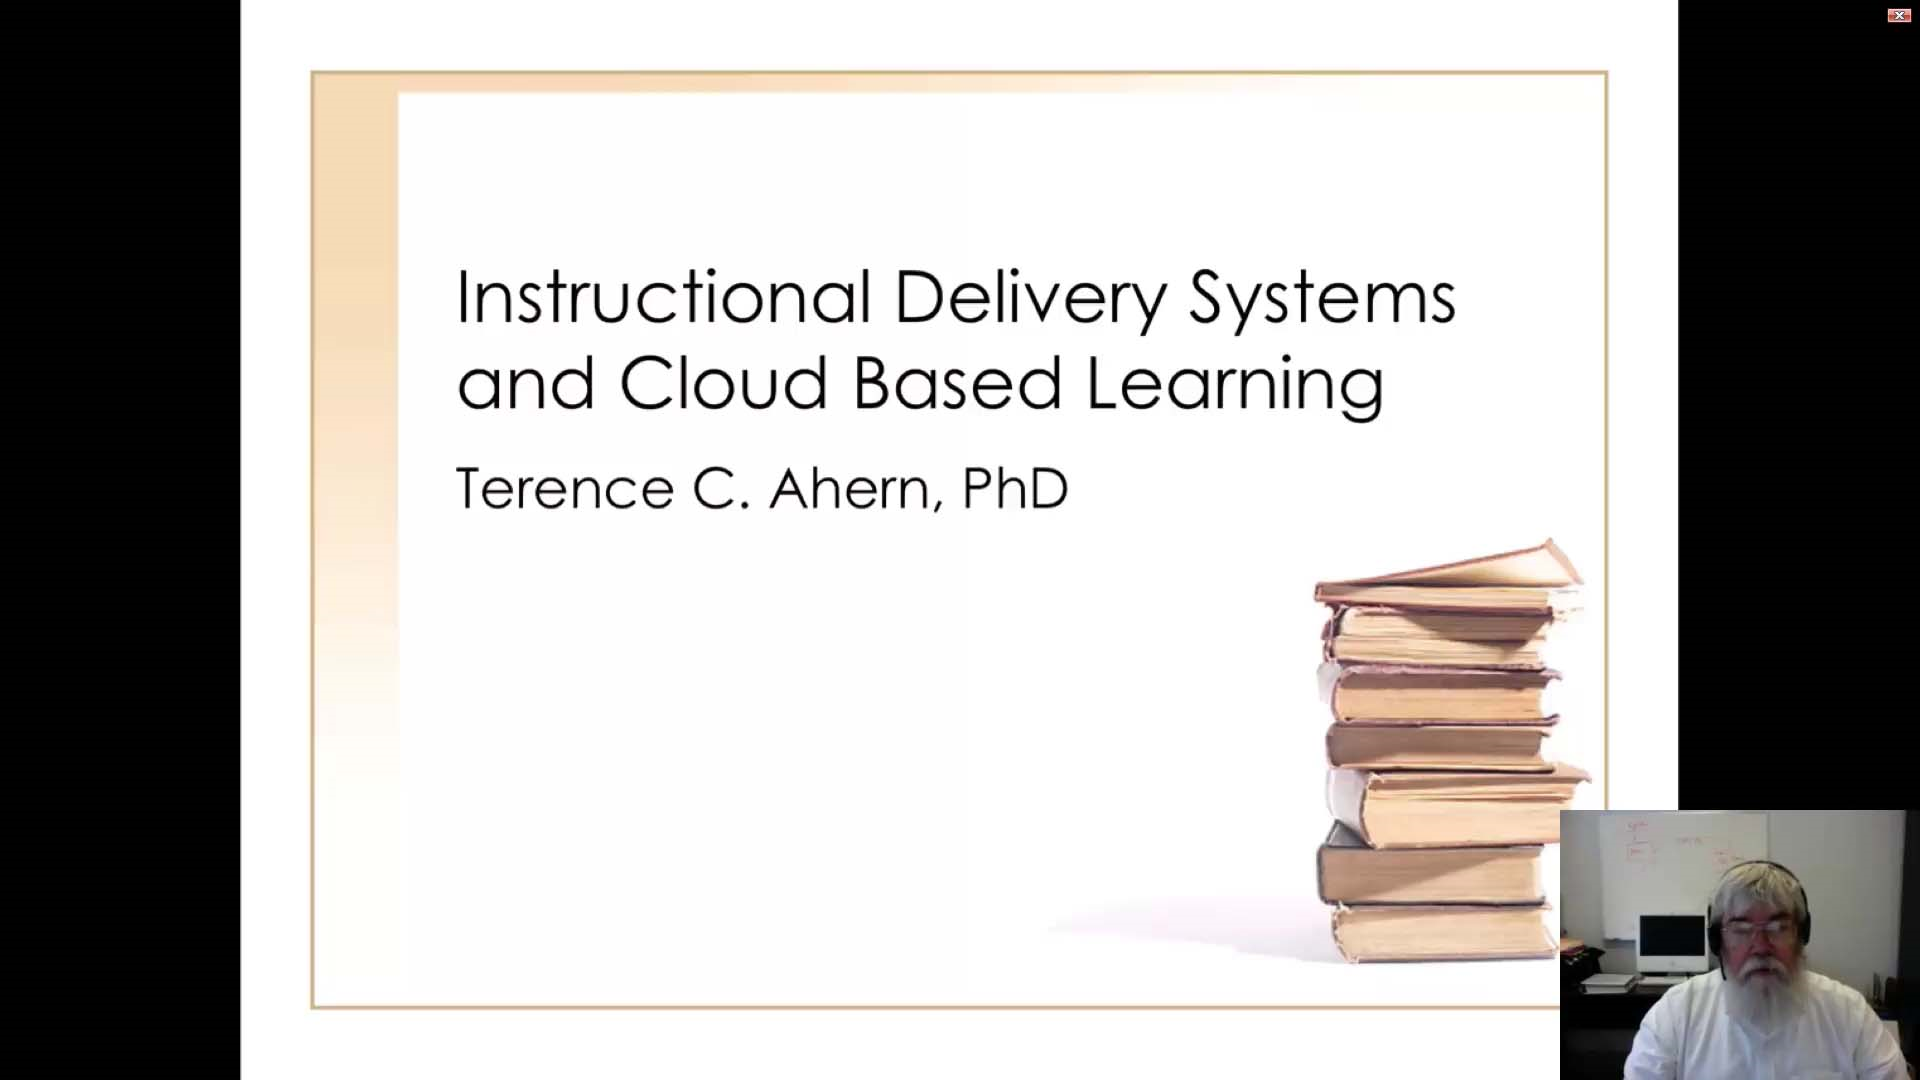 Instructional Delivery Systems and the Era of Cloud-Based Learning